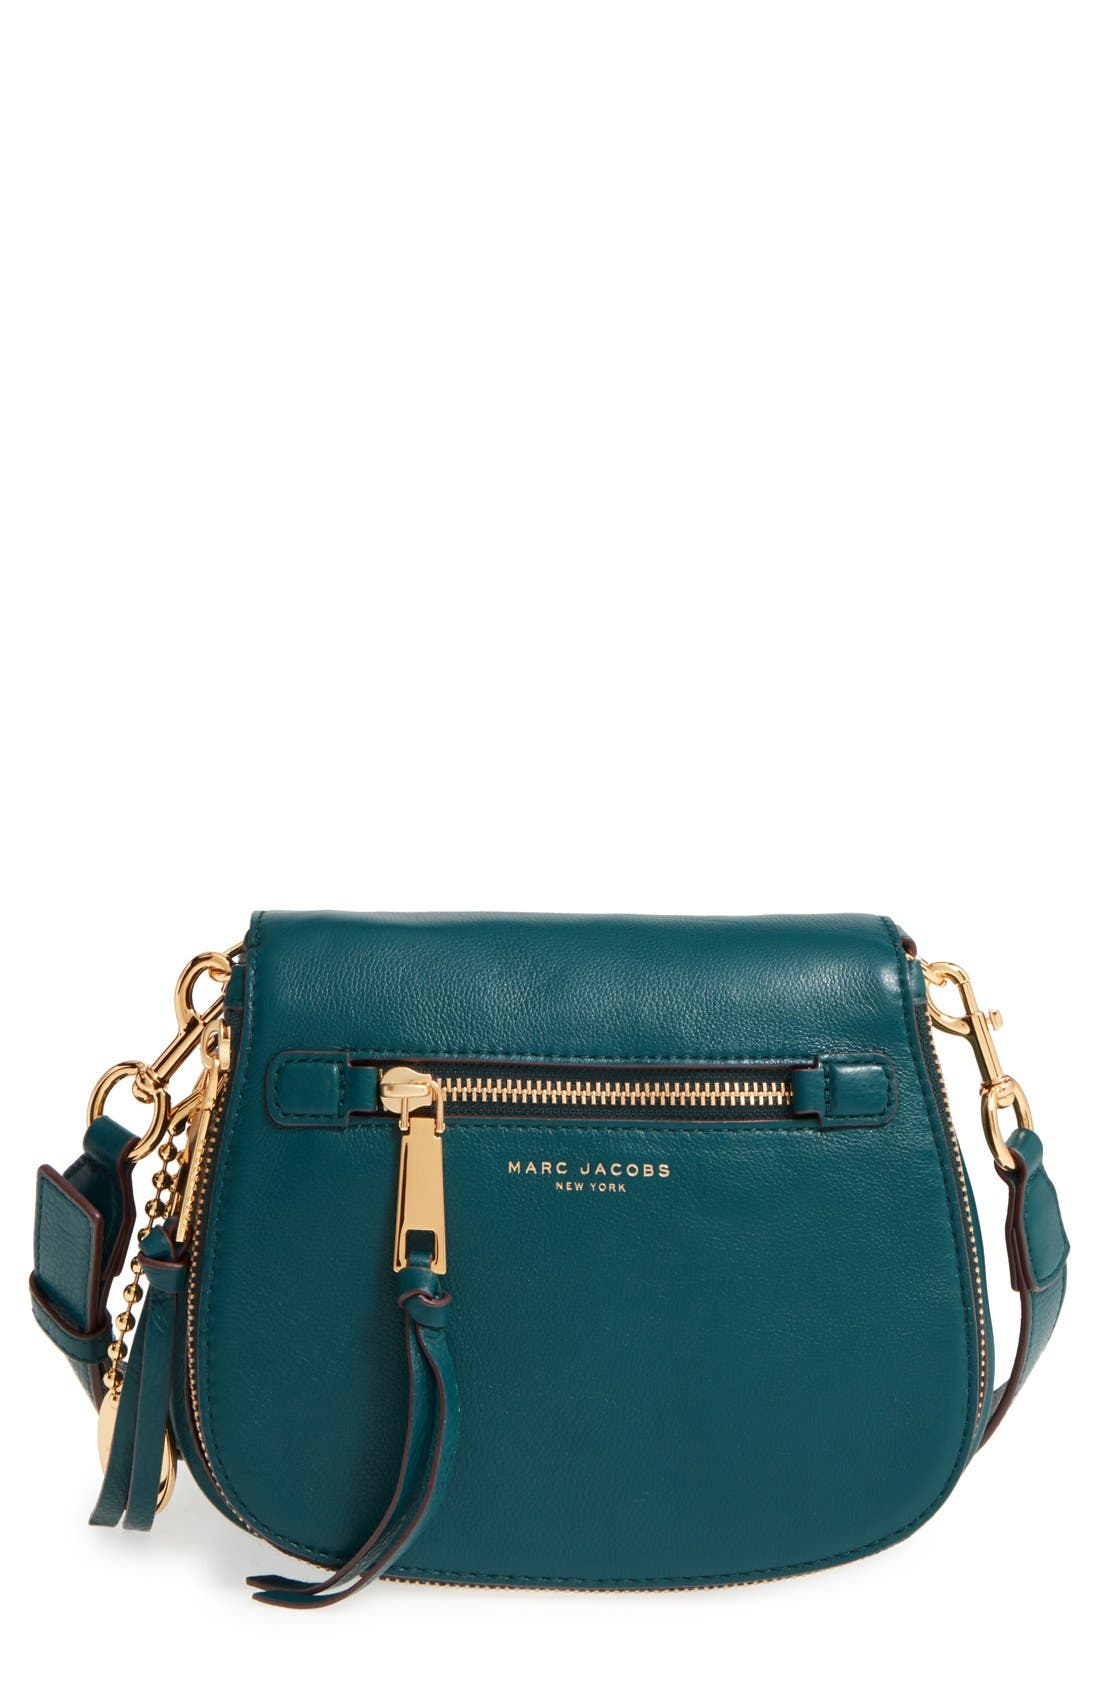 Alternate Image 1 Selected - MARC JACOBS Small Recruit Nomad Pebbled Leather Crossbody Bag